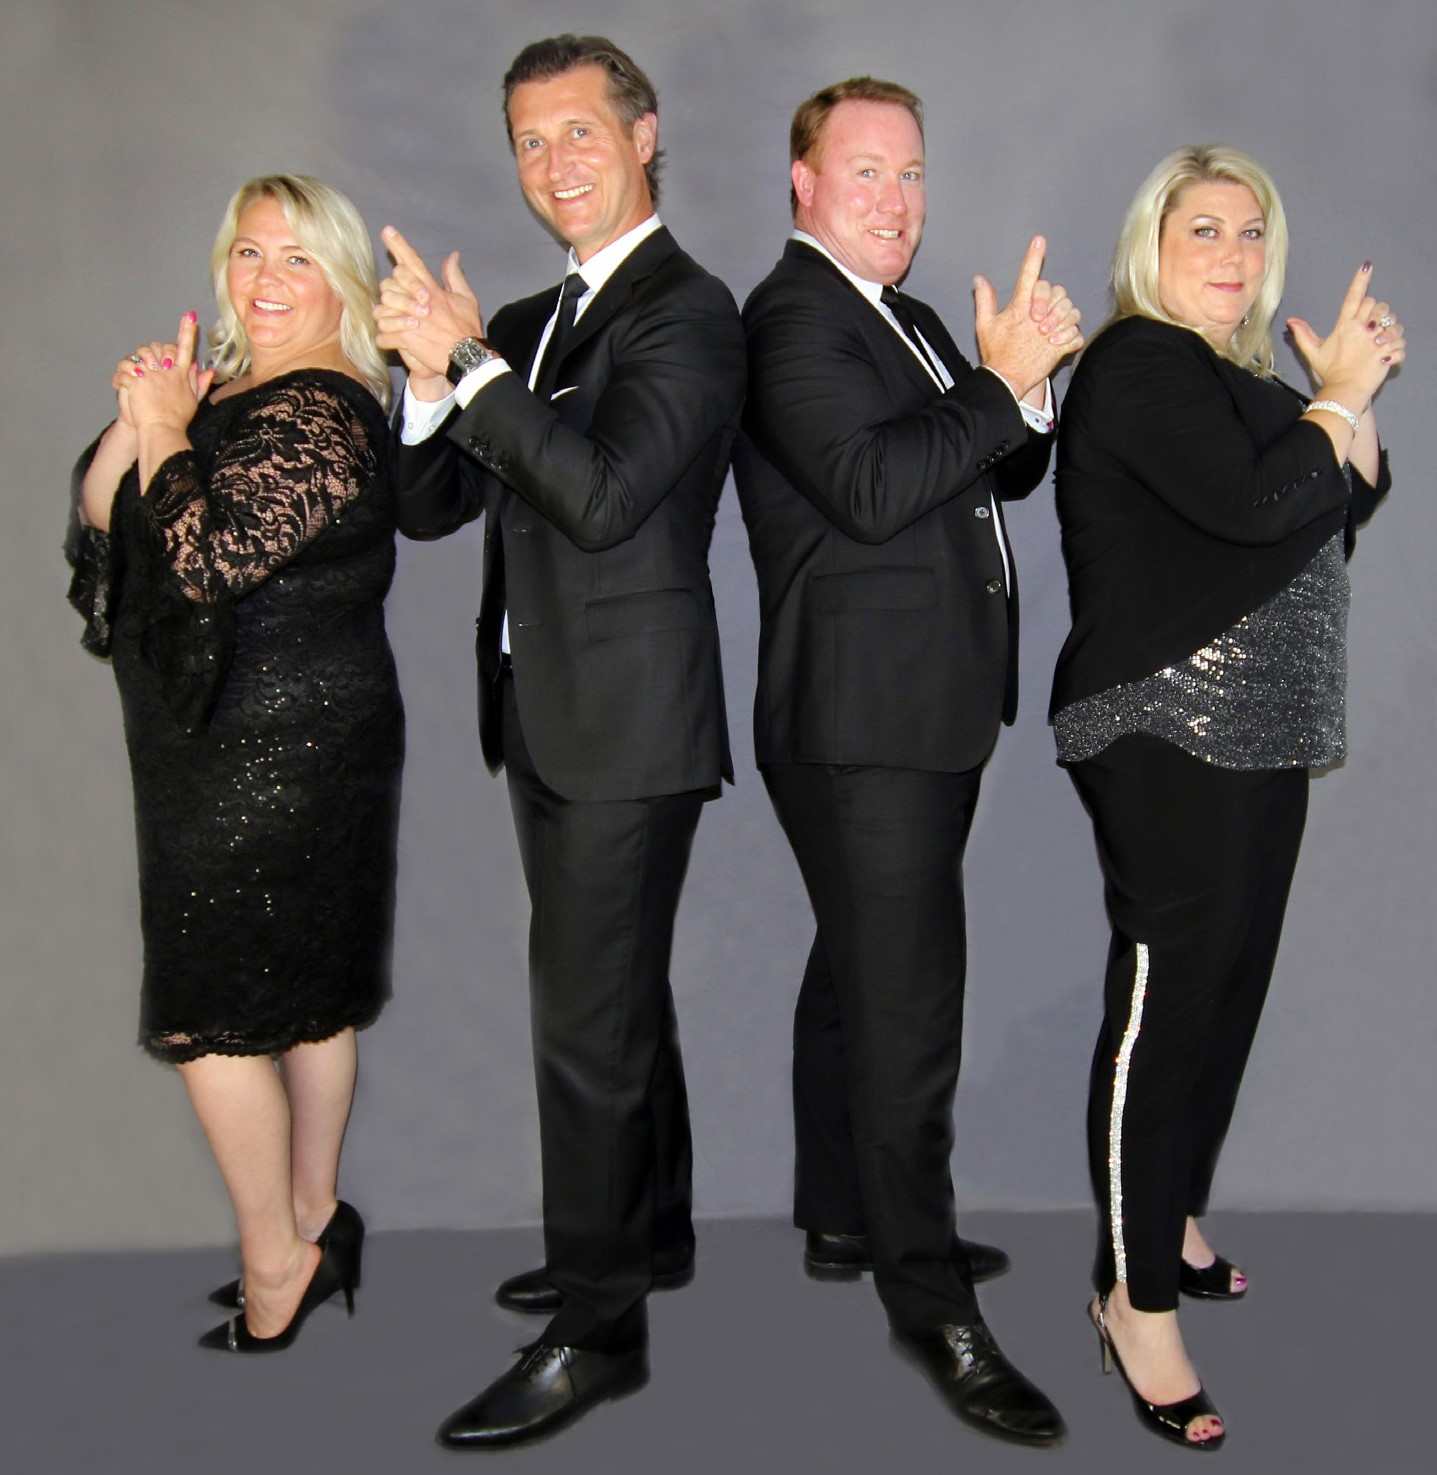 Four people in formal dress in front of a grey background